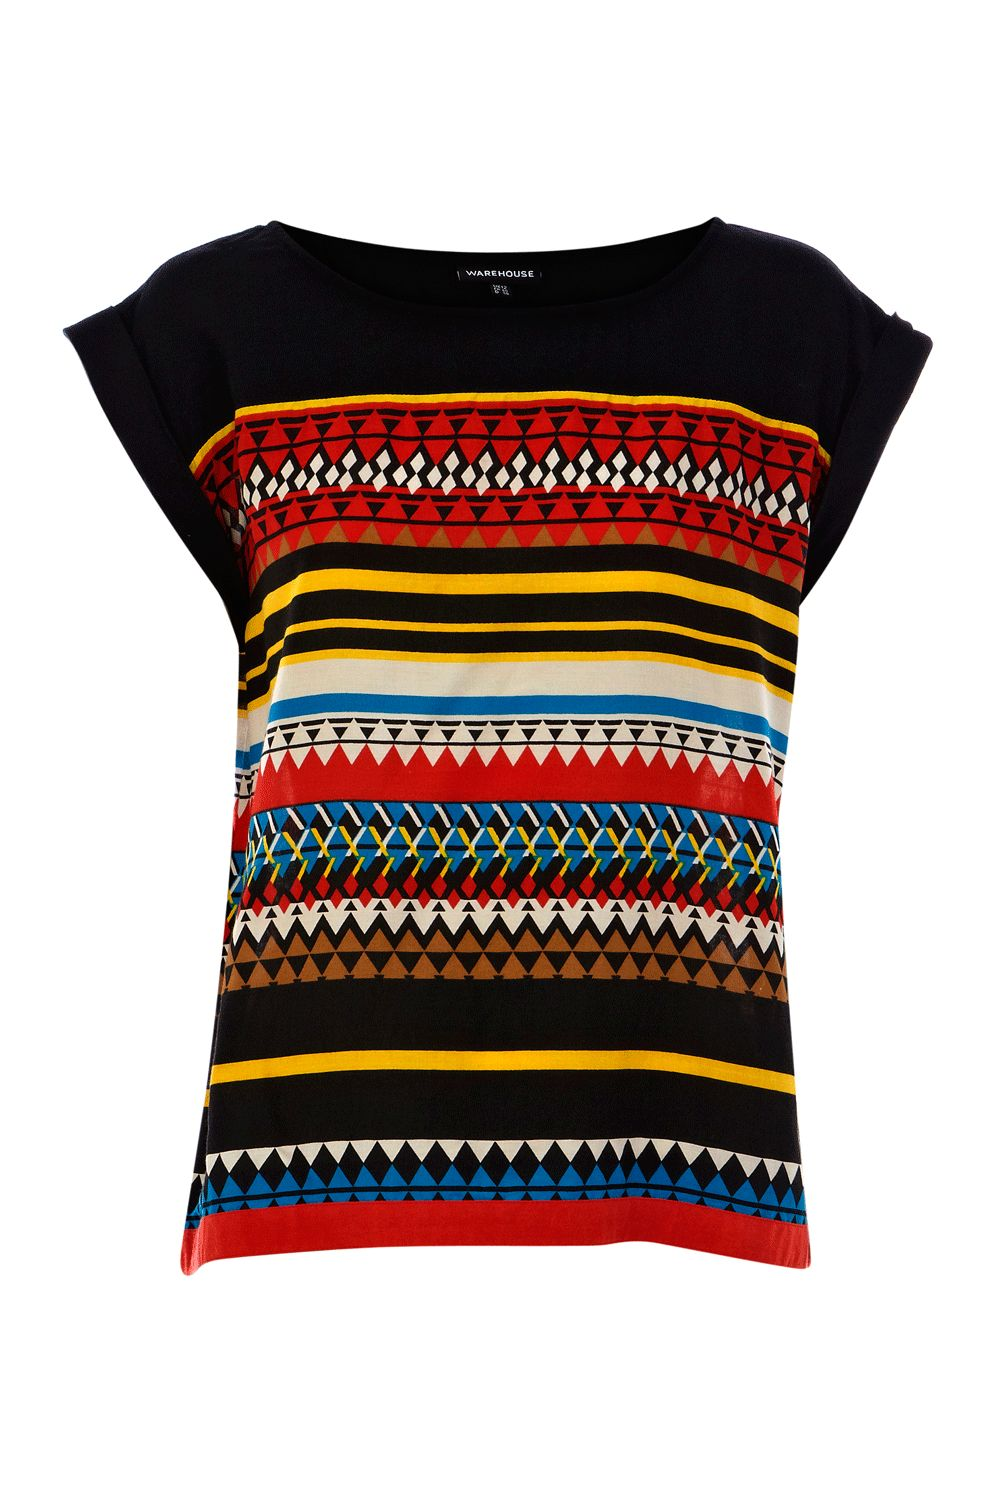 Warehouse Womens Warehouse Stripe tile t-shirt, product image